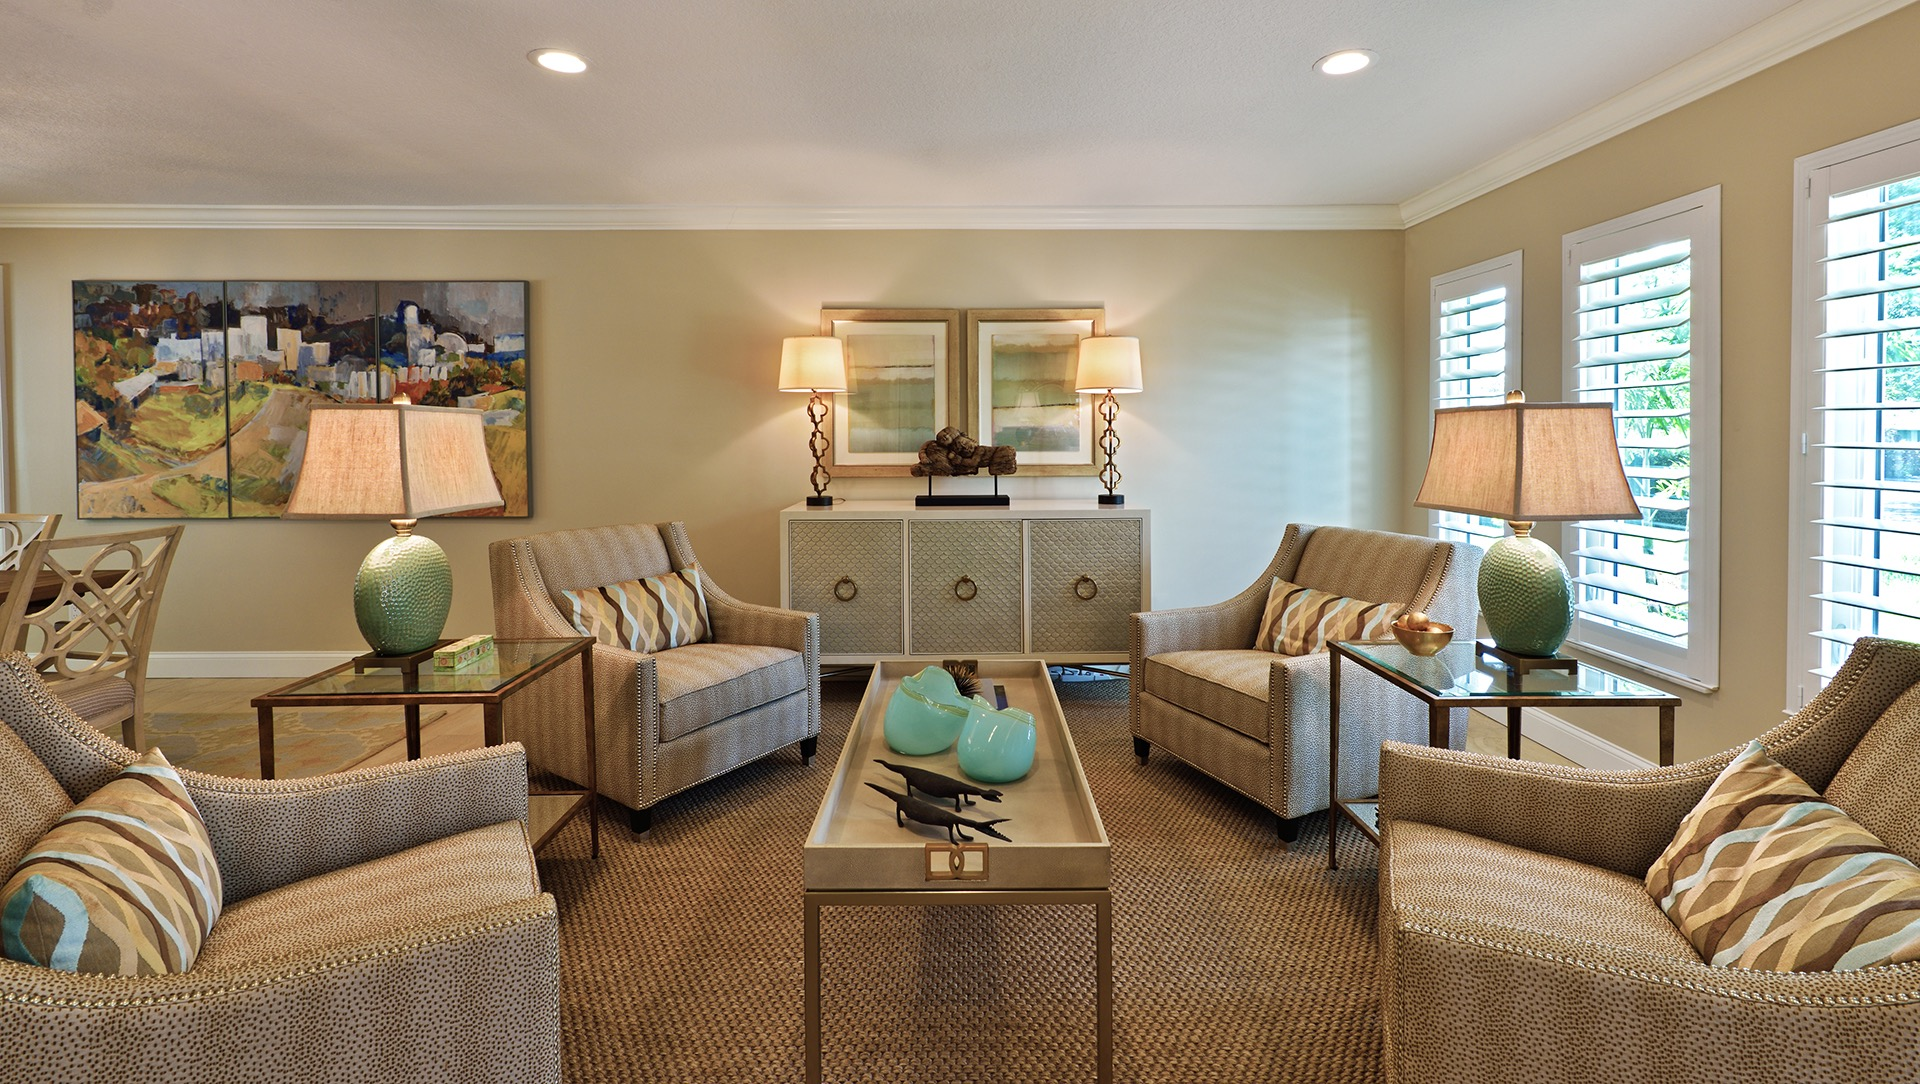 Brown Carpet Flooring For Classic Living Room Interior (Image 1 of 15)